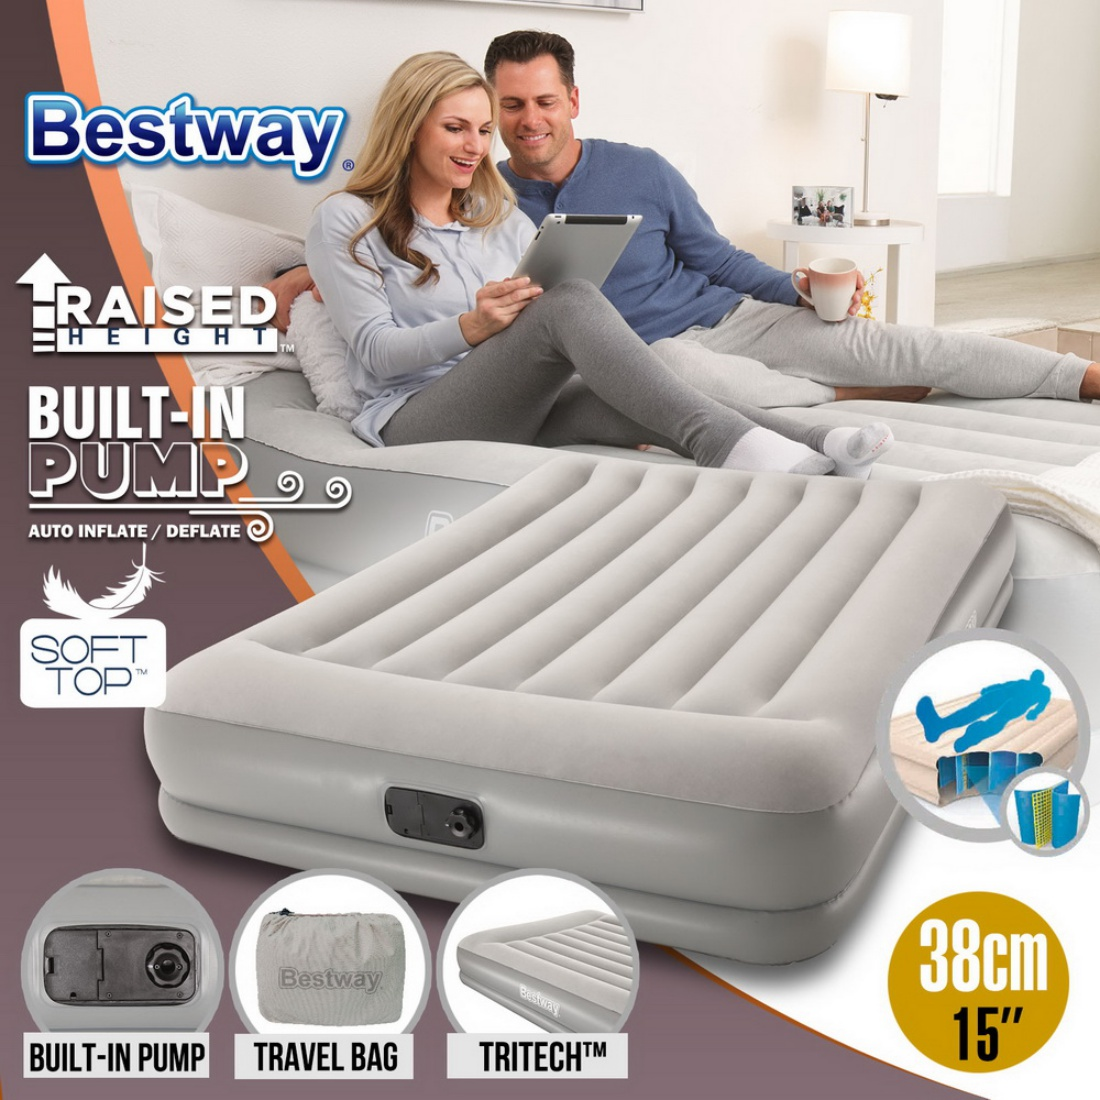 Bestway Portable Queen Inflatable Air Bed Blow Up Mattress Built In Pump Travel